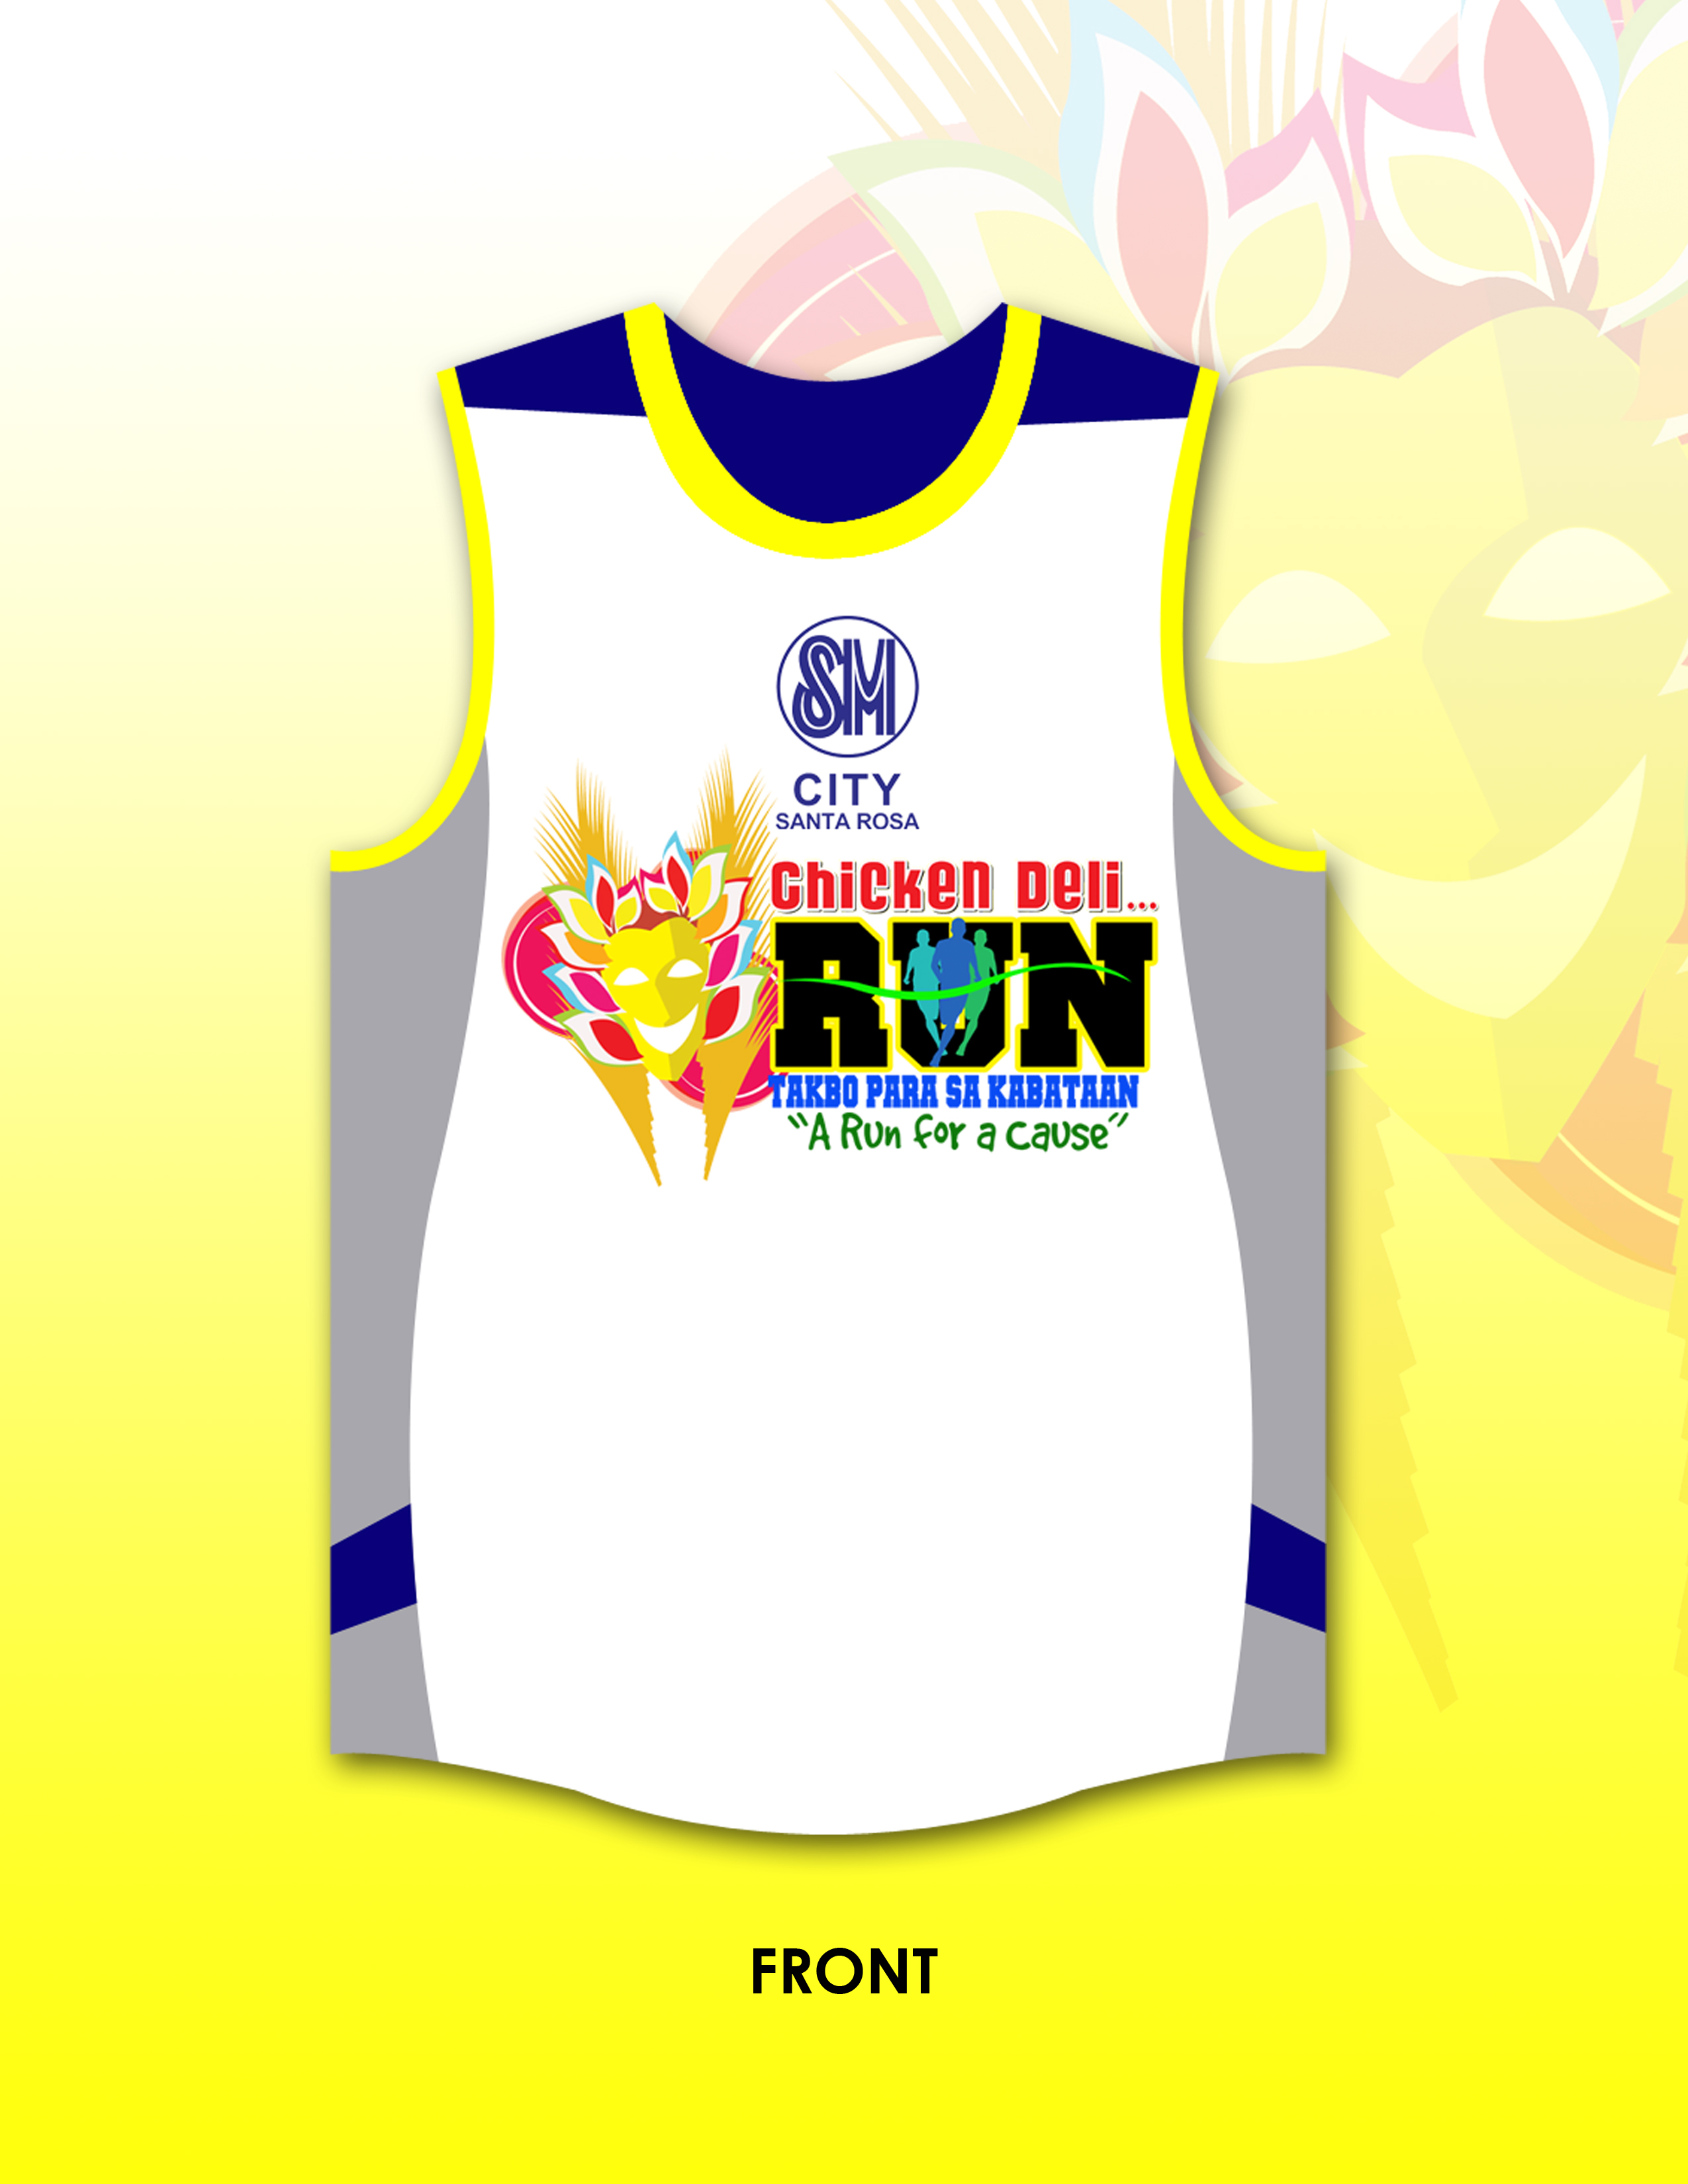 chicken-deli-run-2013-singlet-design